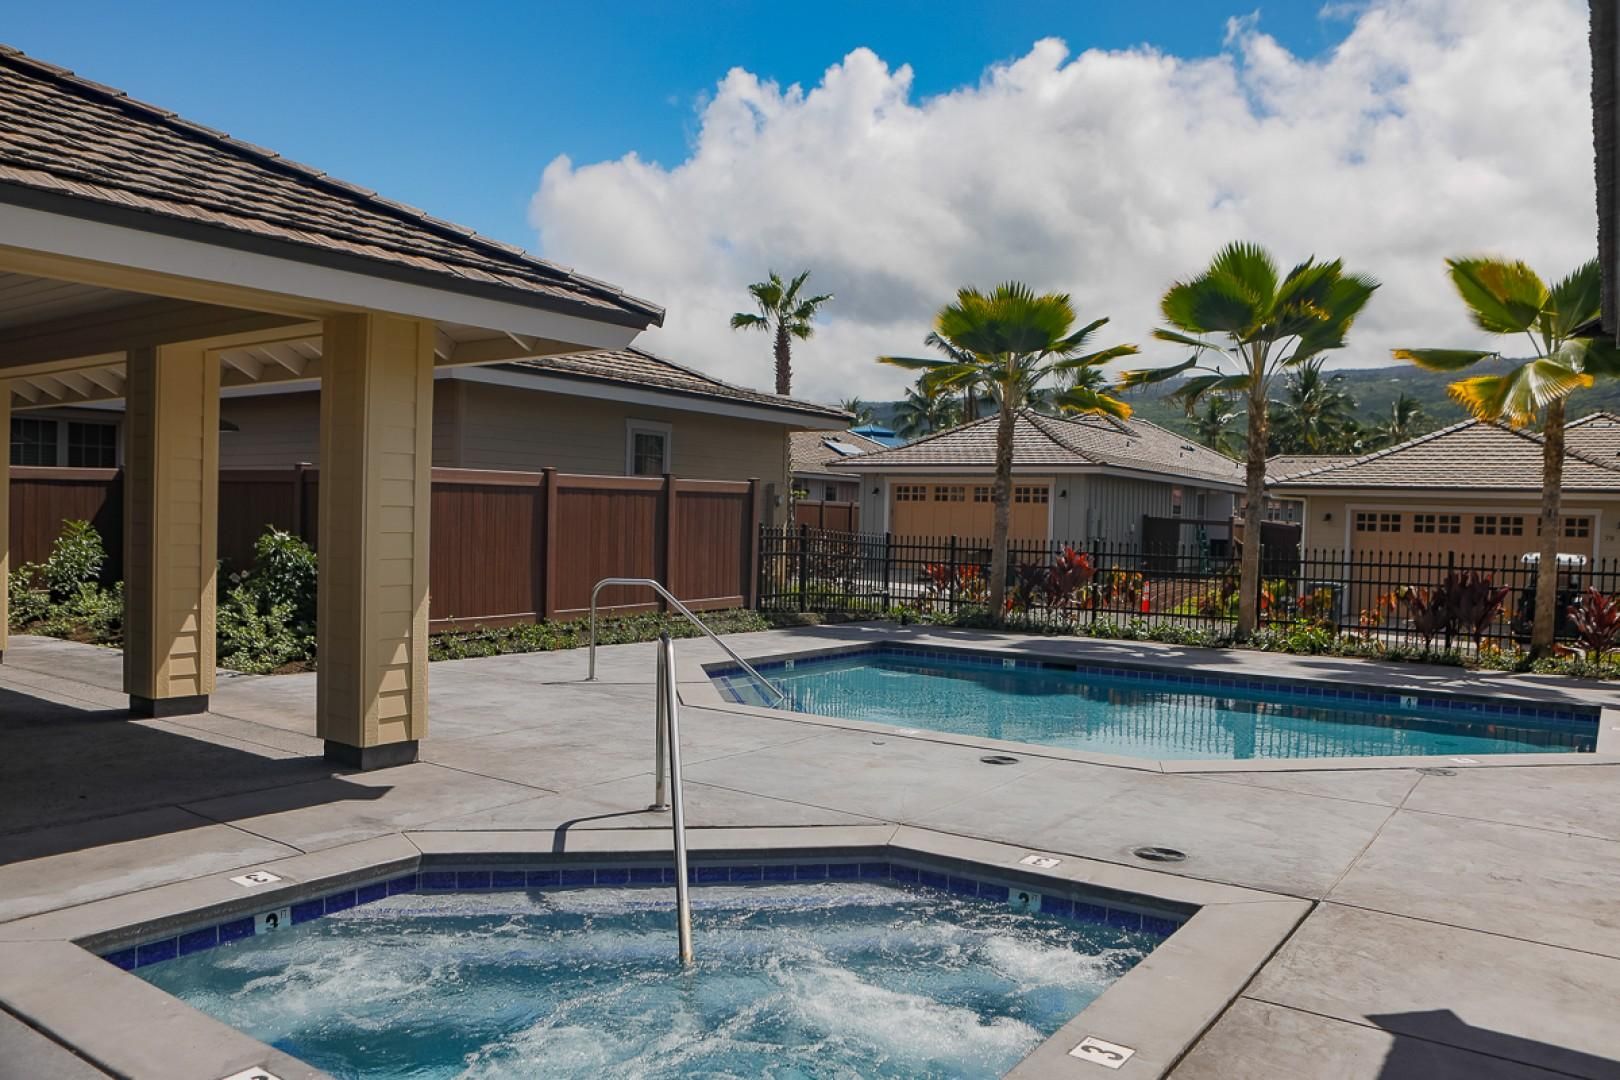 Holua Kai Community Pool is steps away from front door